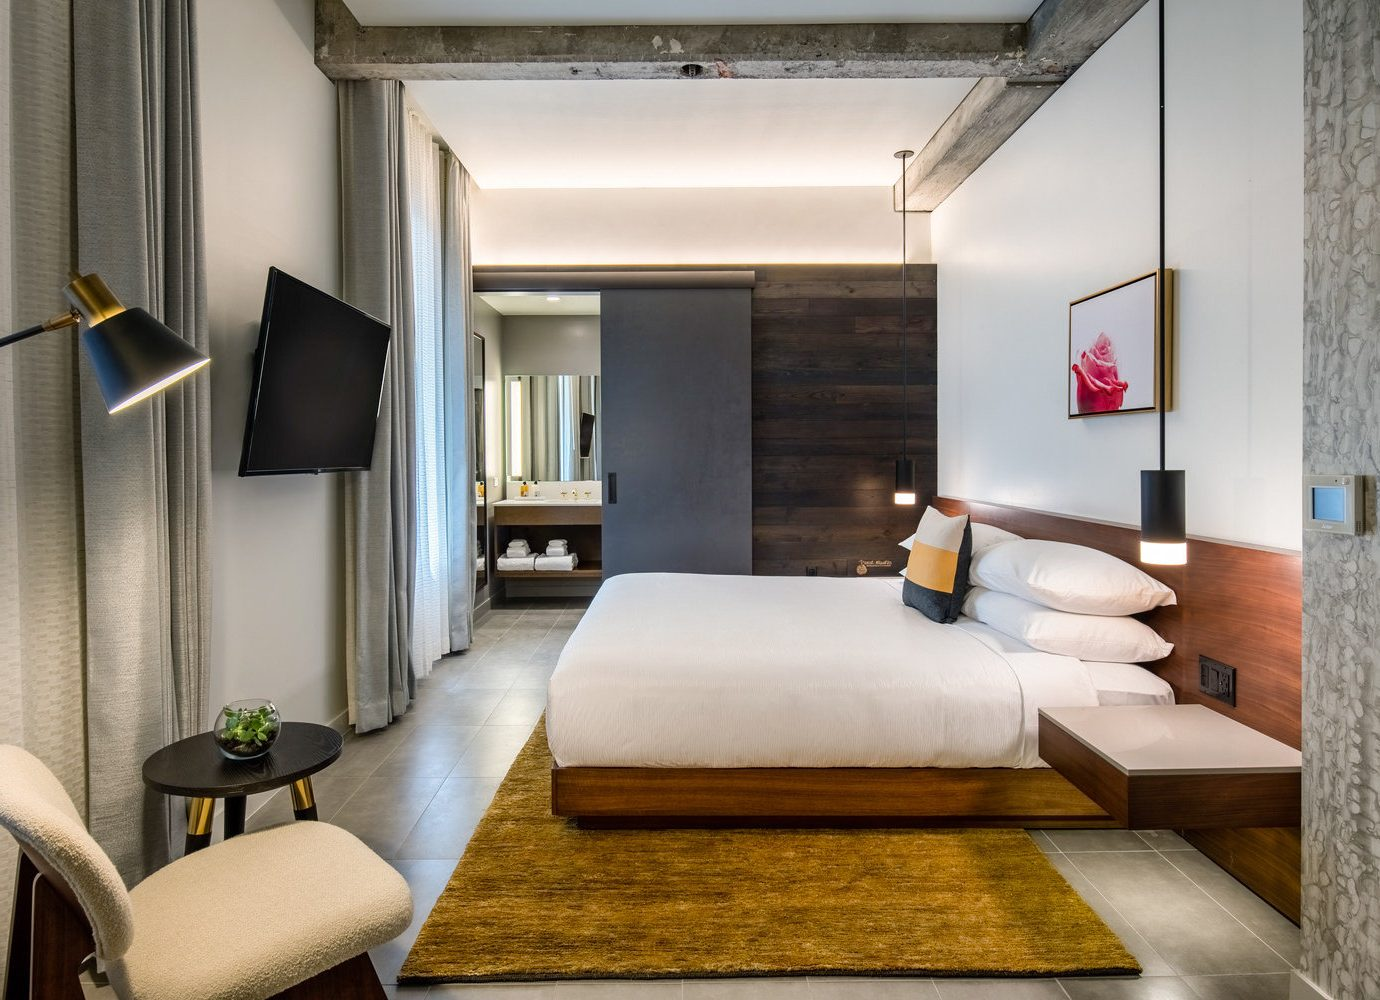 Boutique Hotels Hotels Luxury Travel indoor wall floor room interior design Living ceiling Suite bed frame Bedroom loft interior designer hotel furniture area